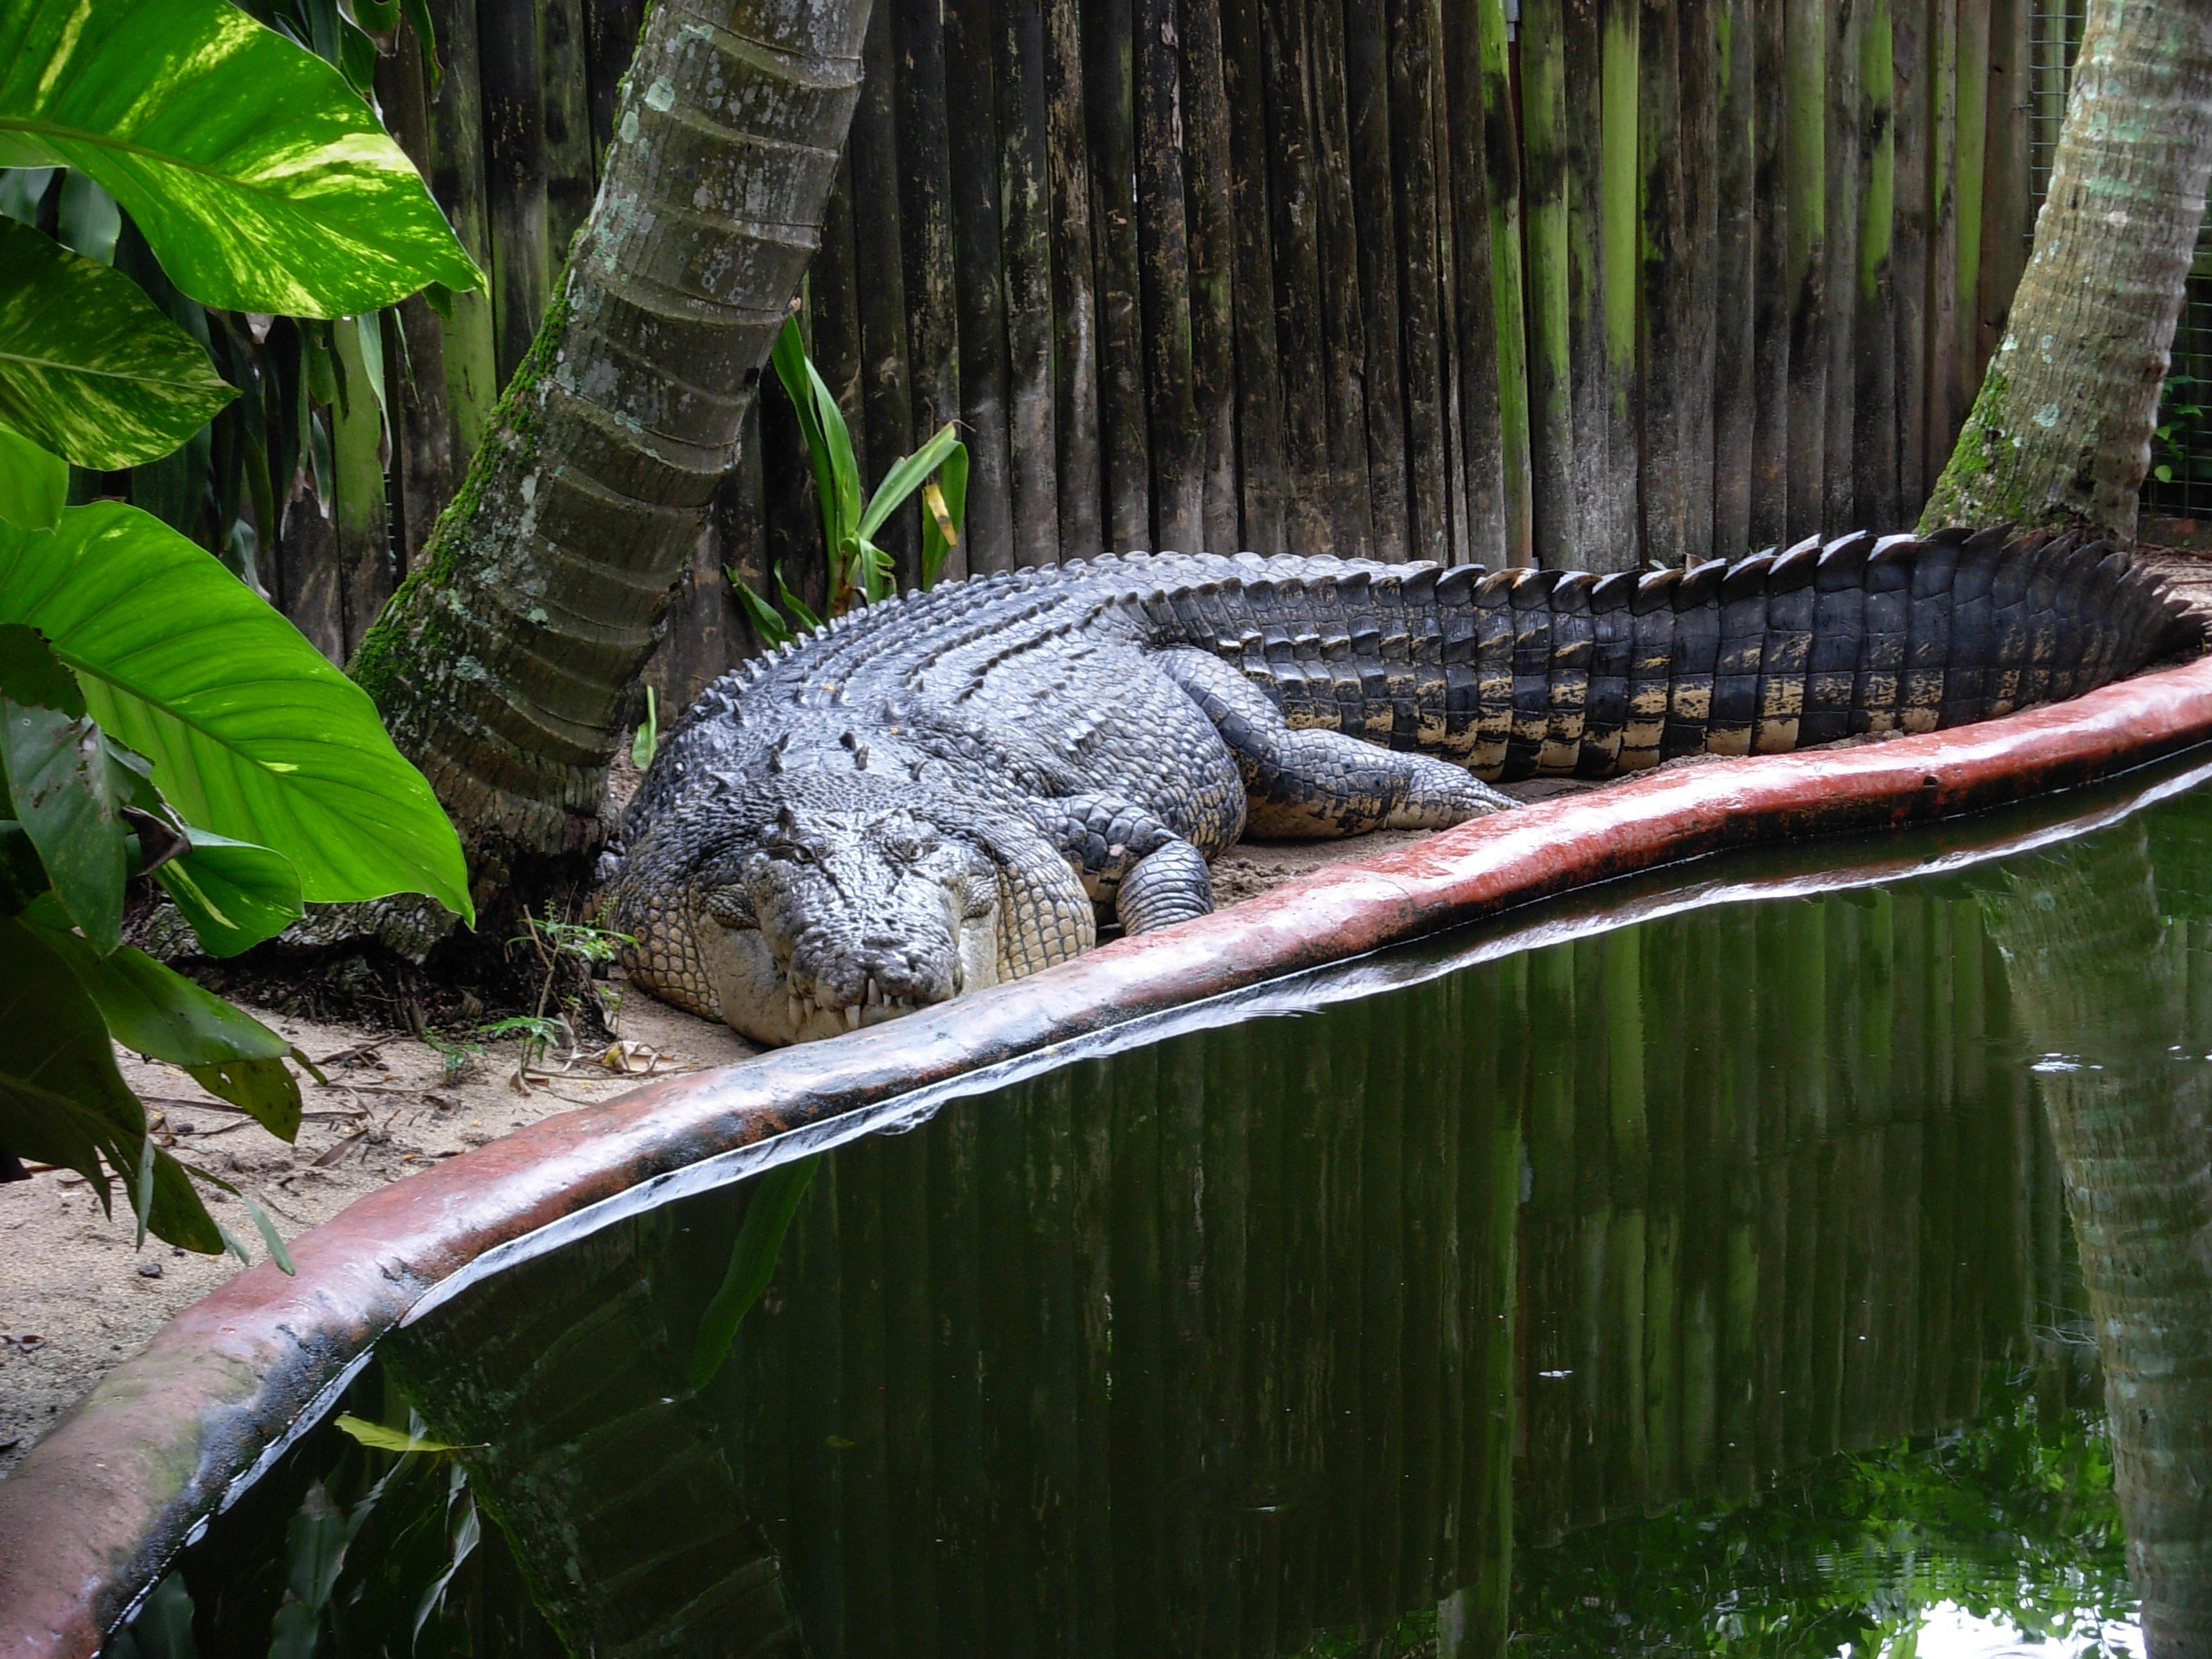 an introduction to the alligators and crocodiles Alligators and crocodiles are, therefore, closely related, and people often confuse one with the other however, these two reptiles are very different an alligator is distinguished by its wide, rounded snout and black color.